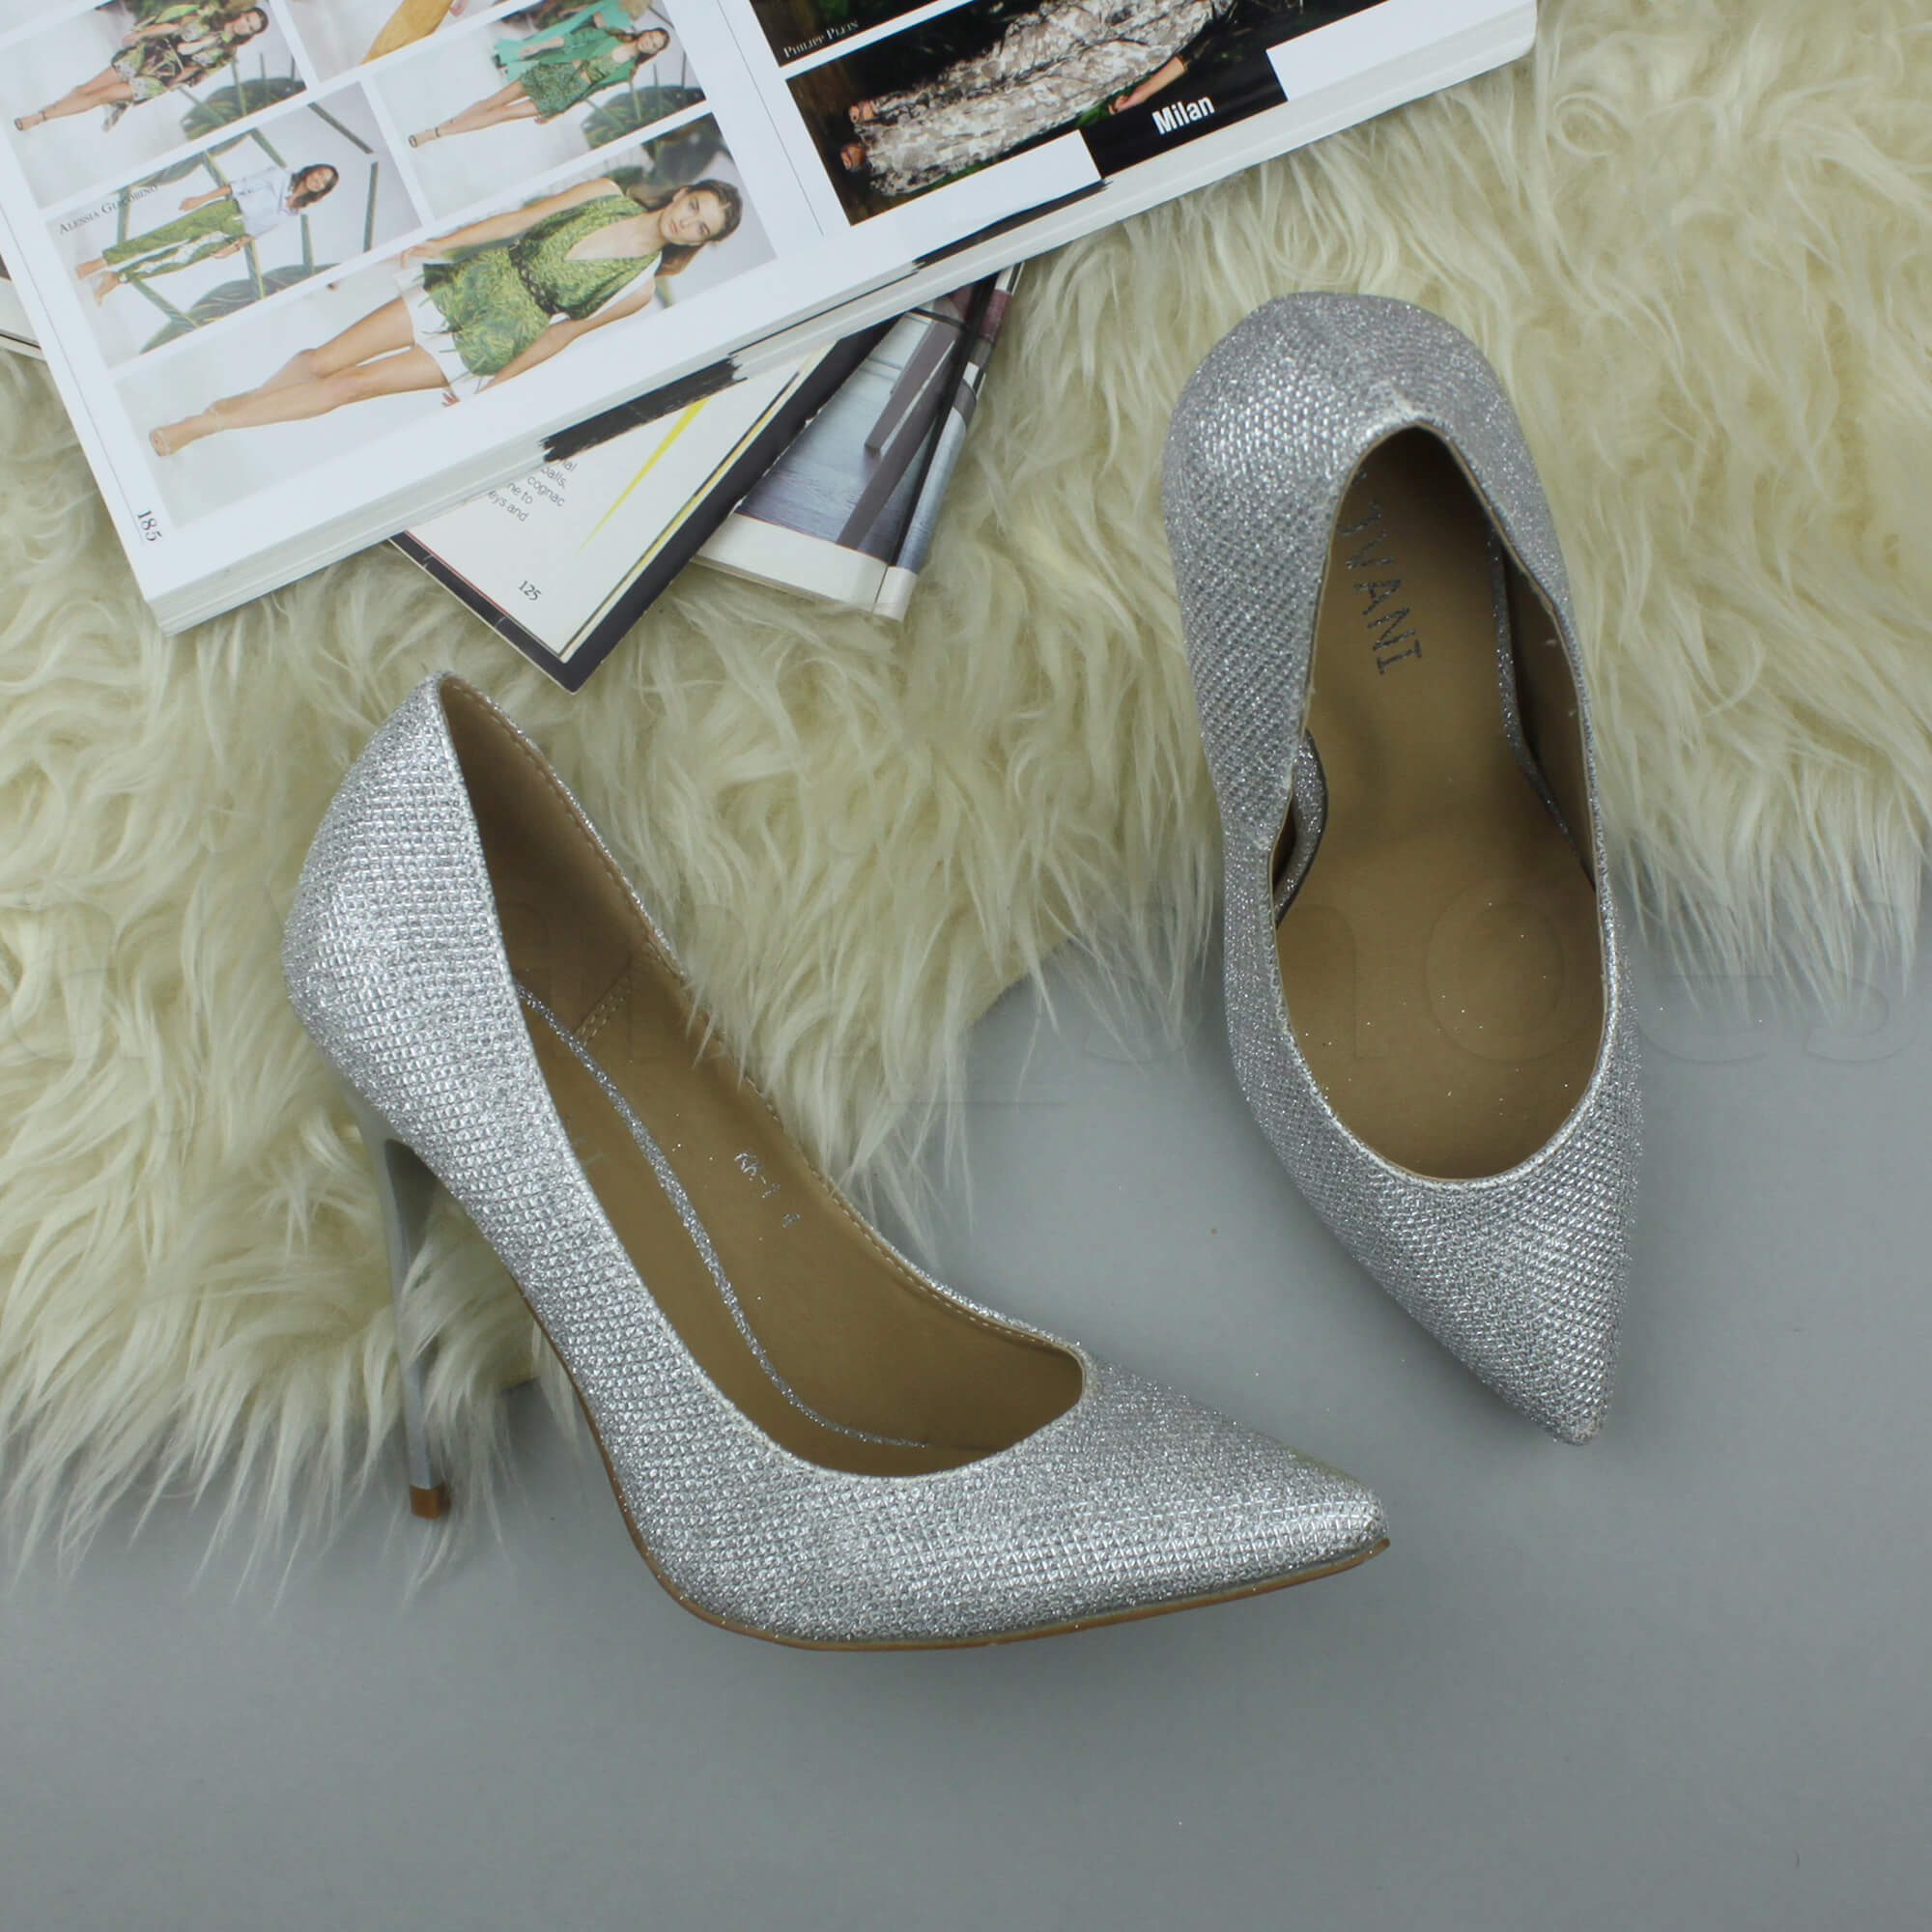 WOMENS-LADIES-HIGH-HEEL-POINTED-CONTRAST-COURT-SMART-PARTY-WORK-SHOES-PUMPS-SIZE thumbnail 202